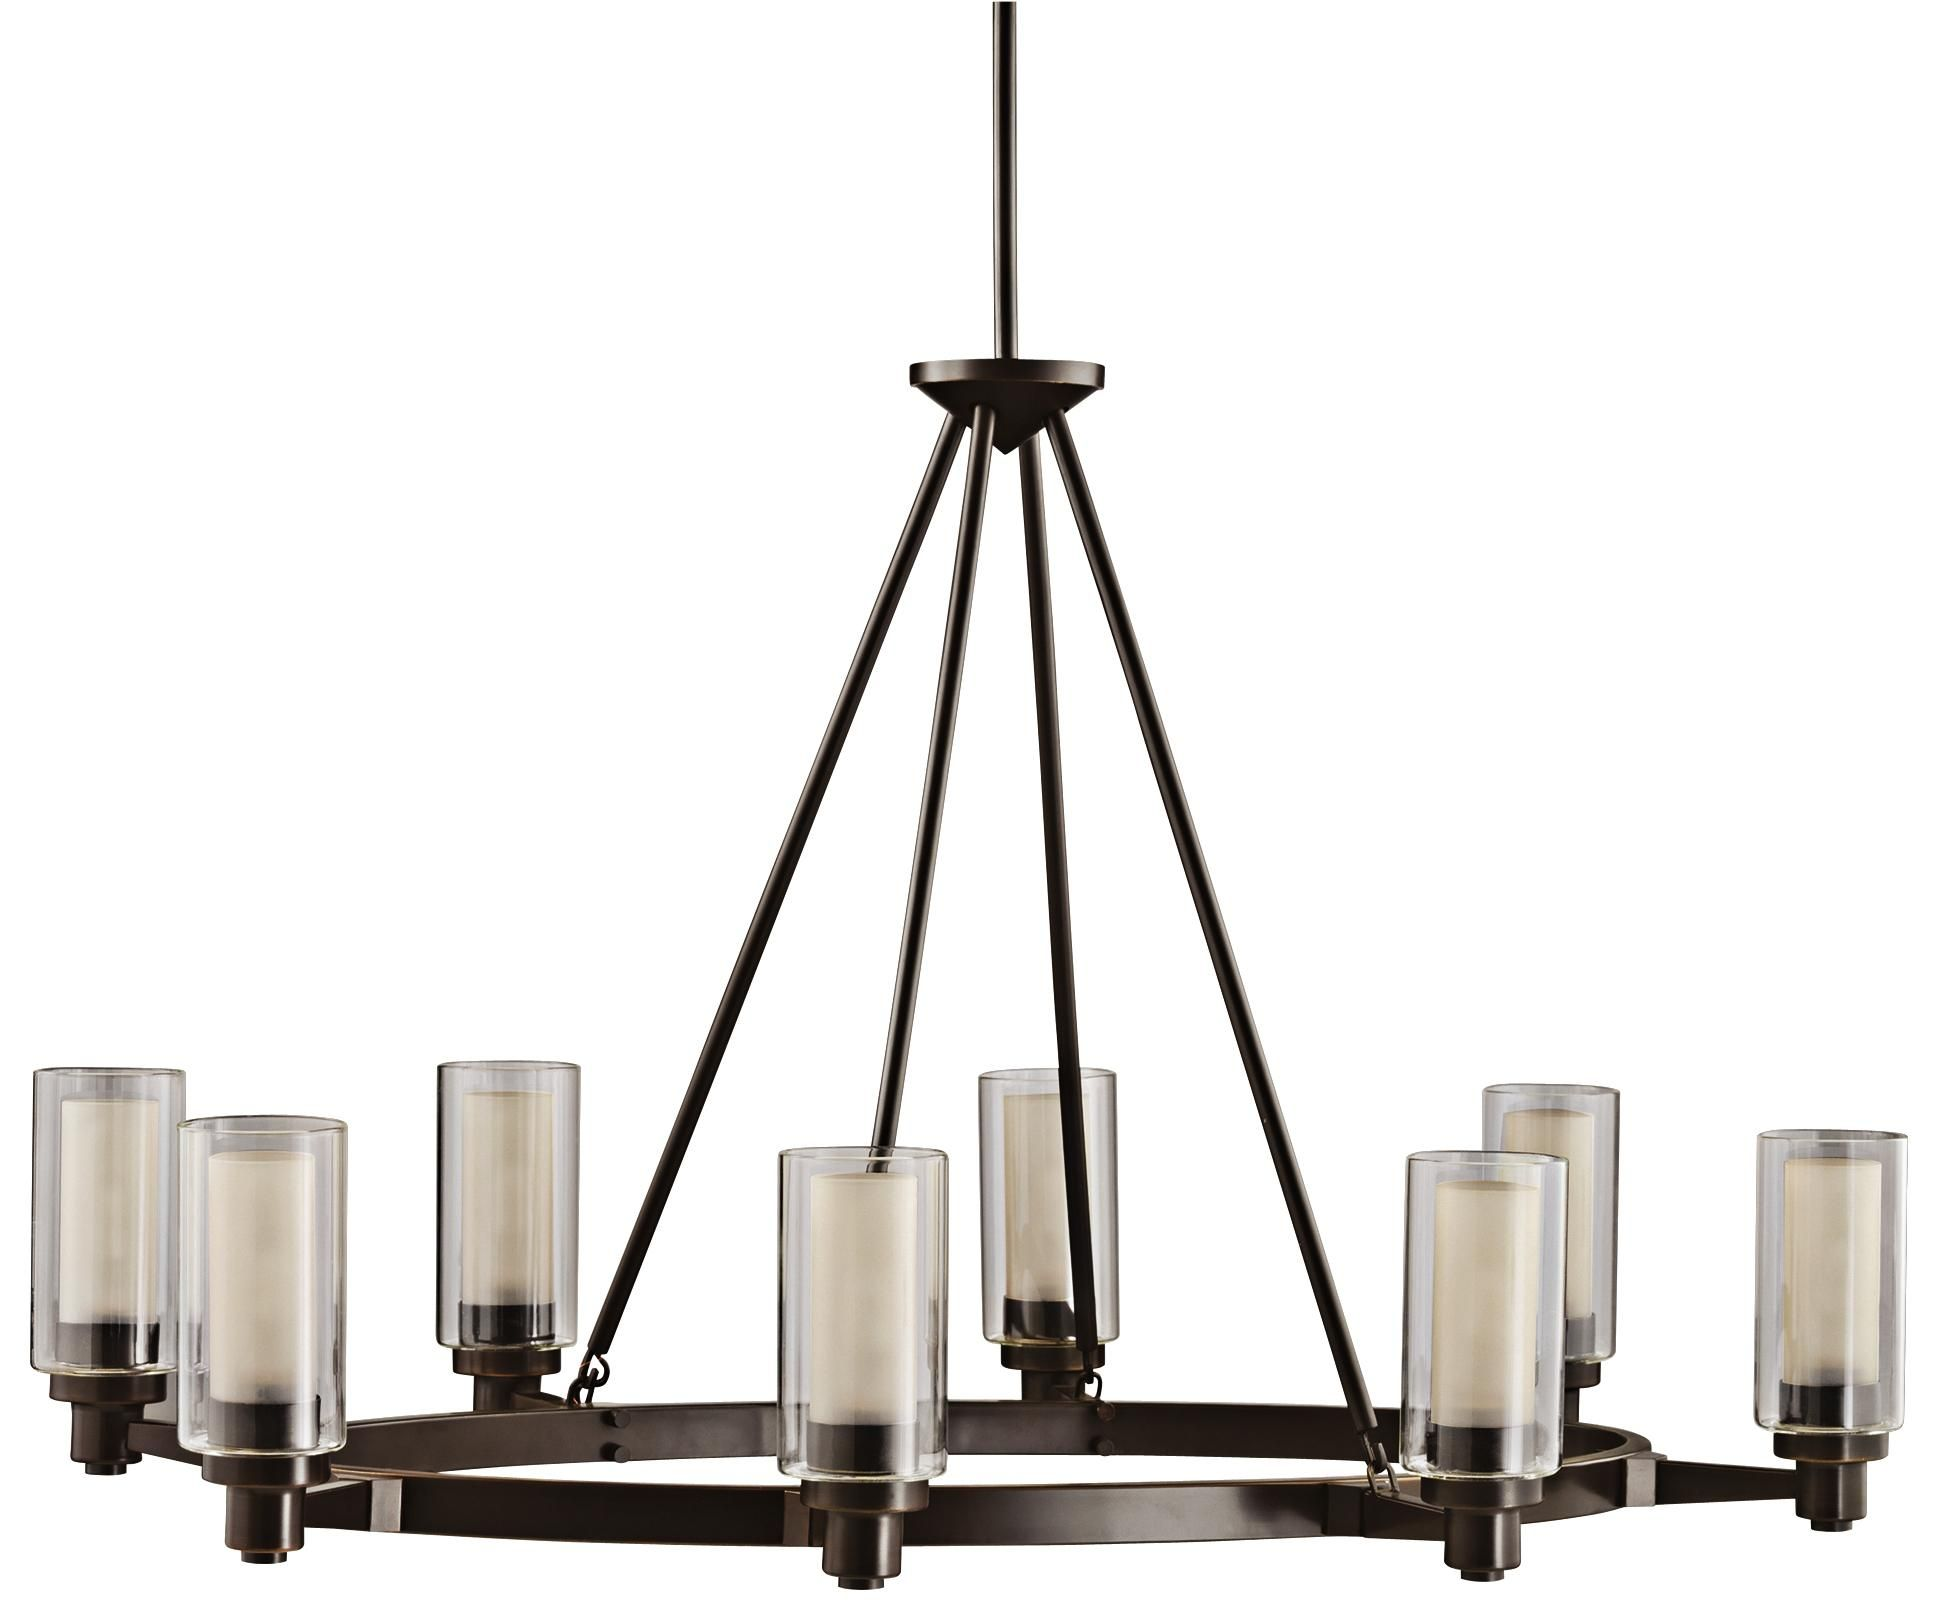 Circolo Collection Olde Bronze 35 1 2 Wide Oval Chandelier